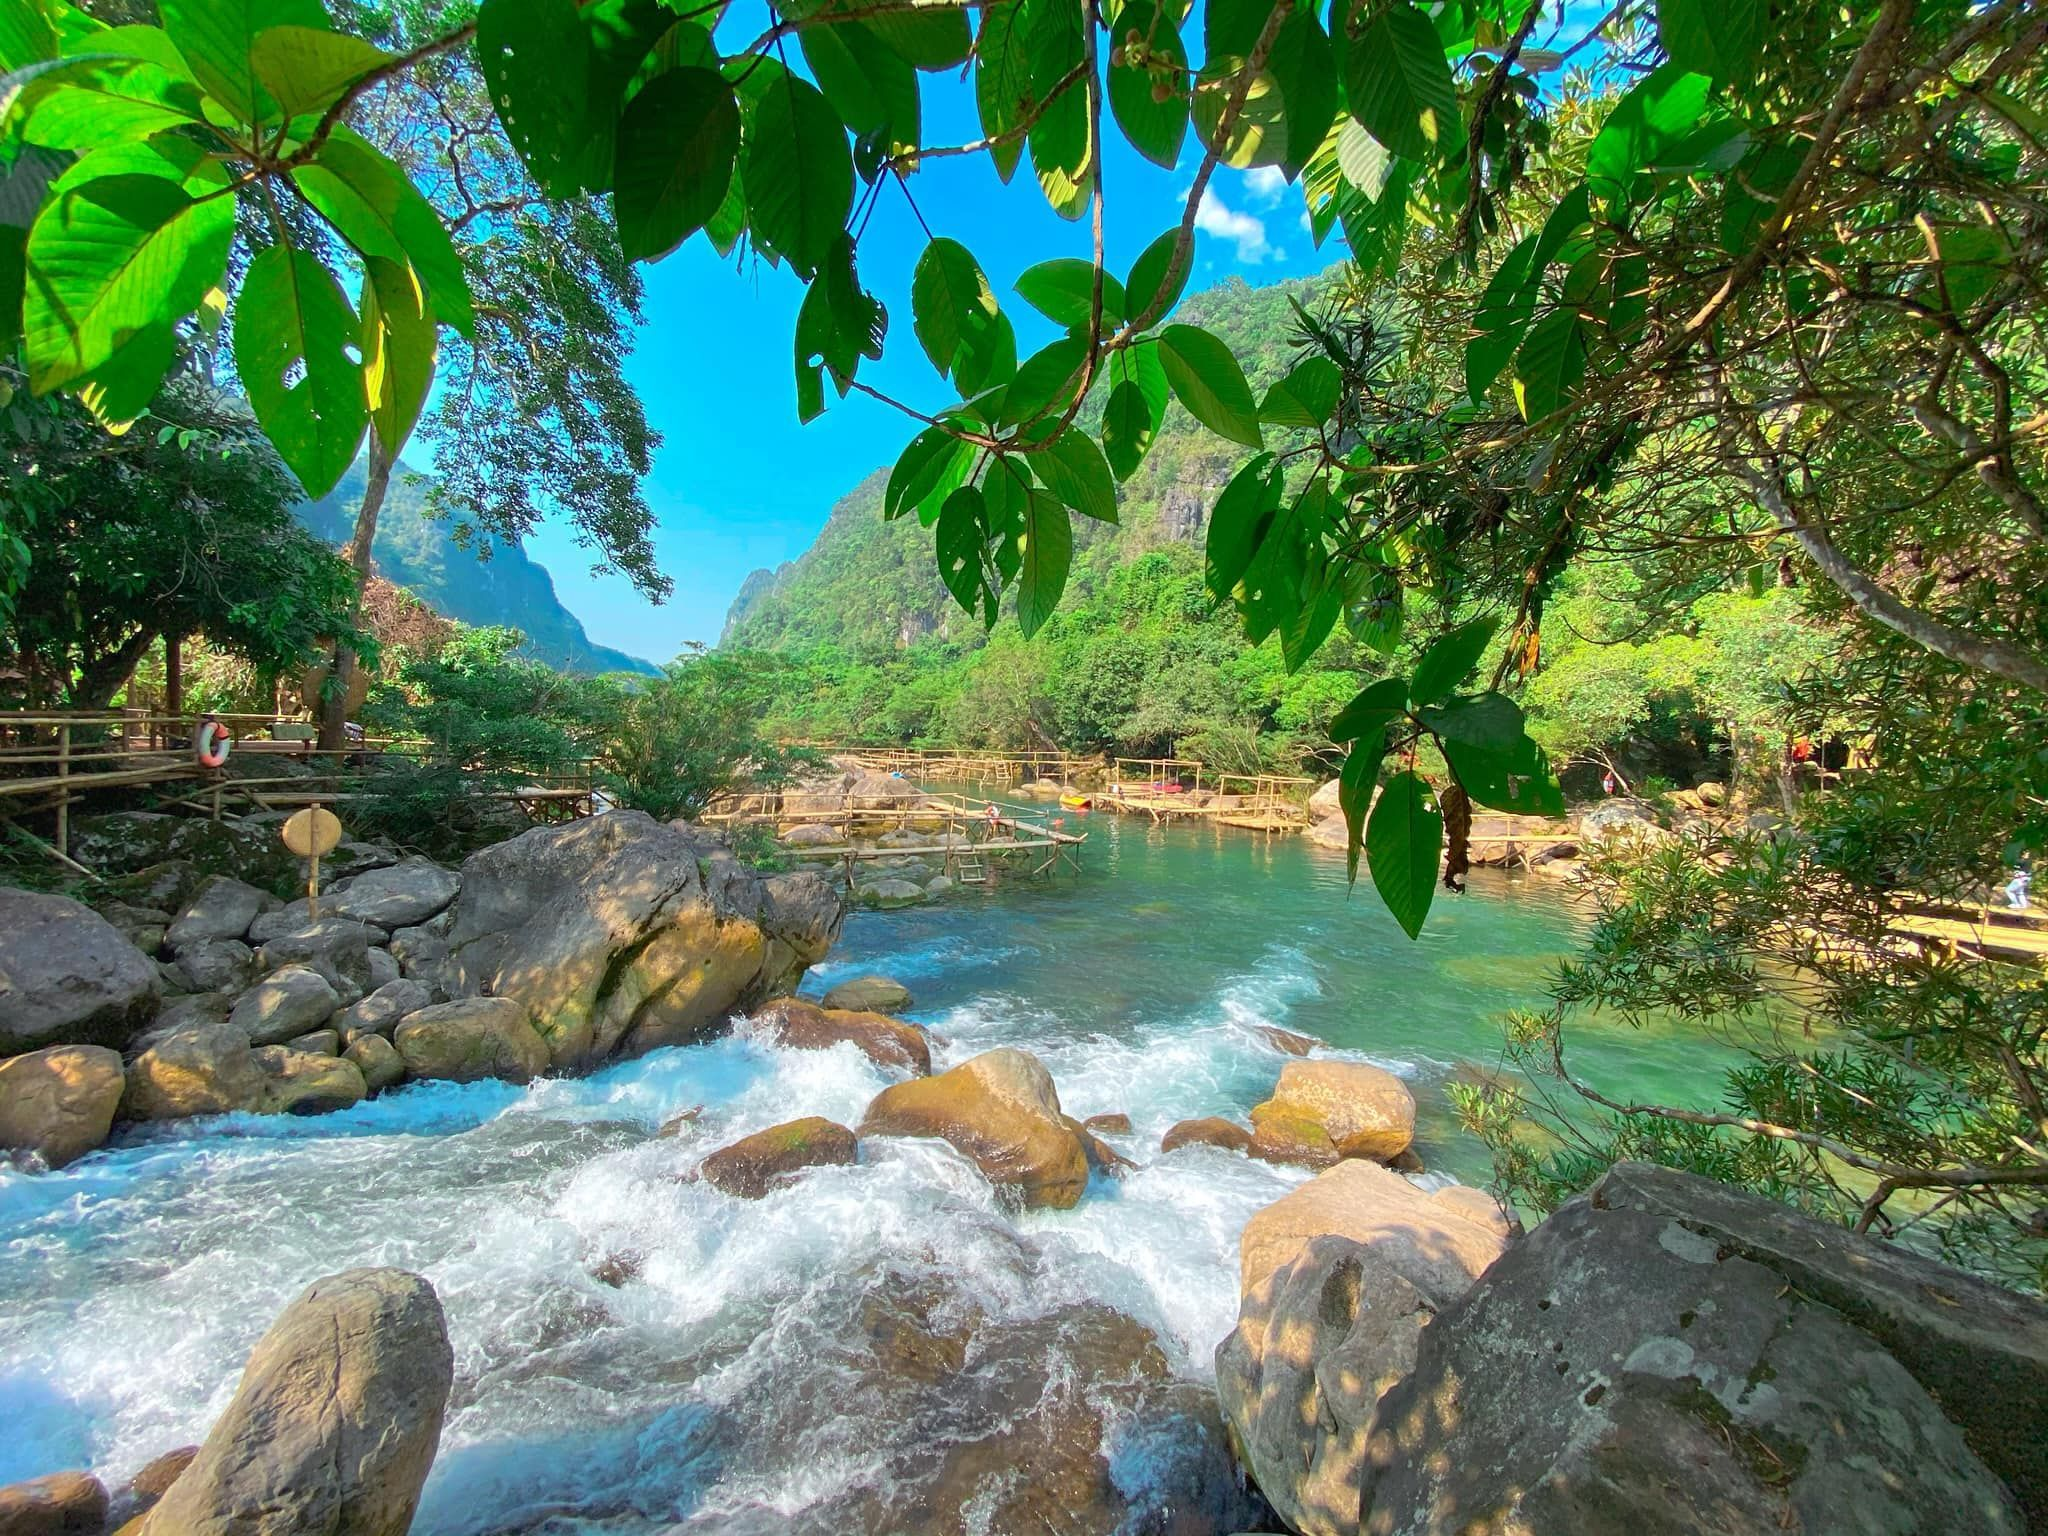 Visit the beautiful spring that 'rises' from the ground in Quang Binh province